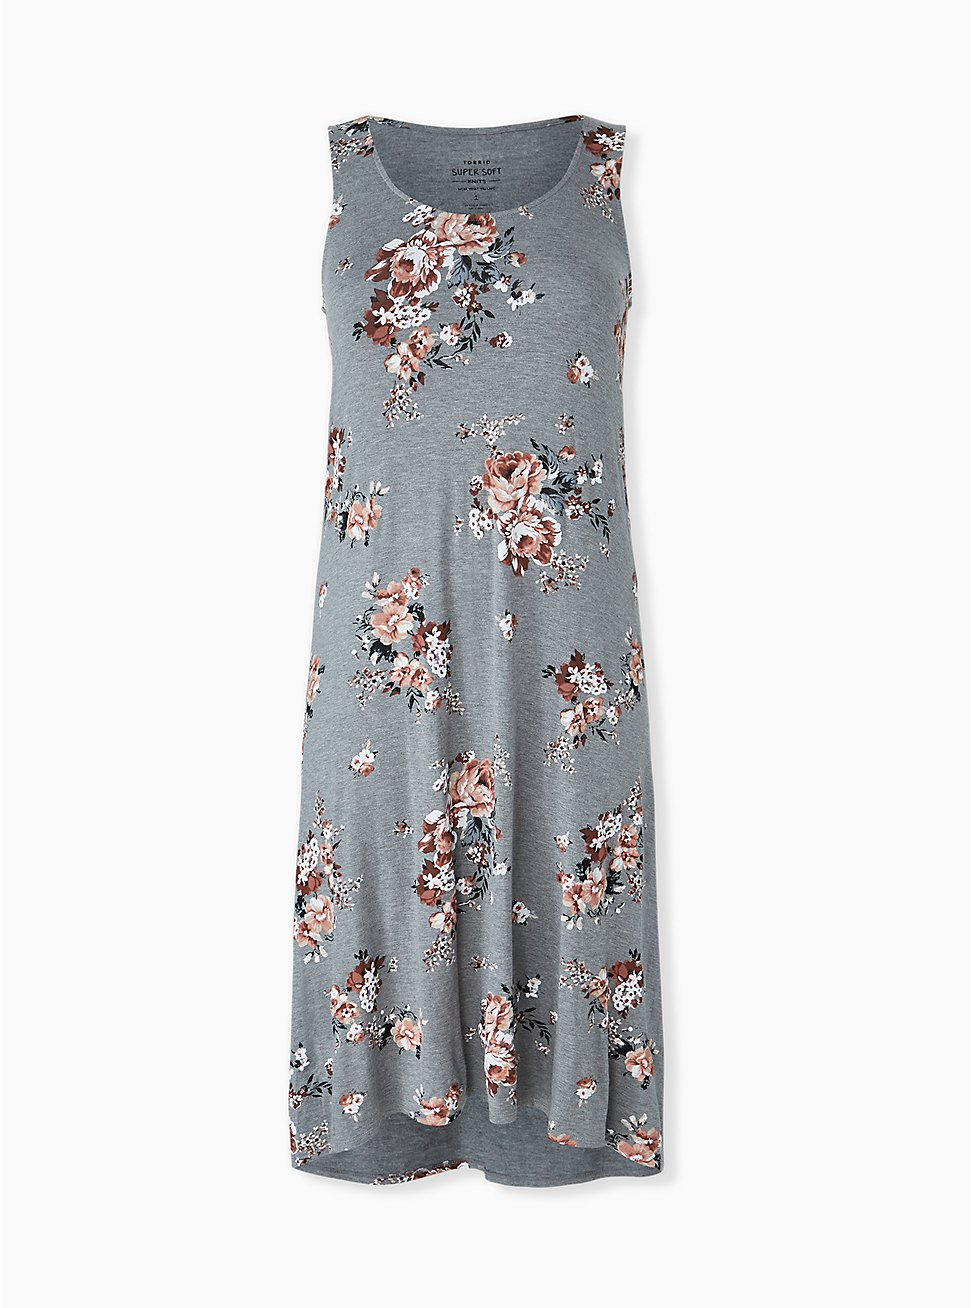 Super Soft Heather Grey Floral Hi-Lo Maxi Dress, ROSEY GARDEN, hi-res